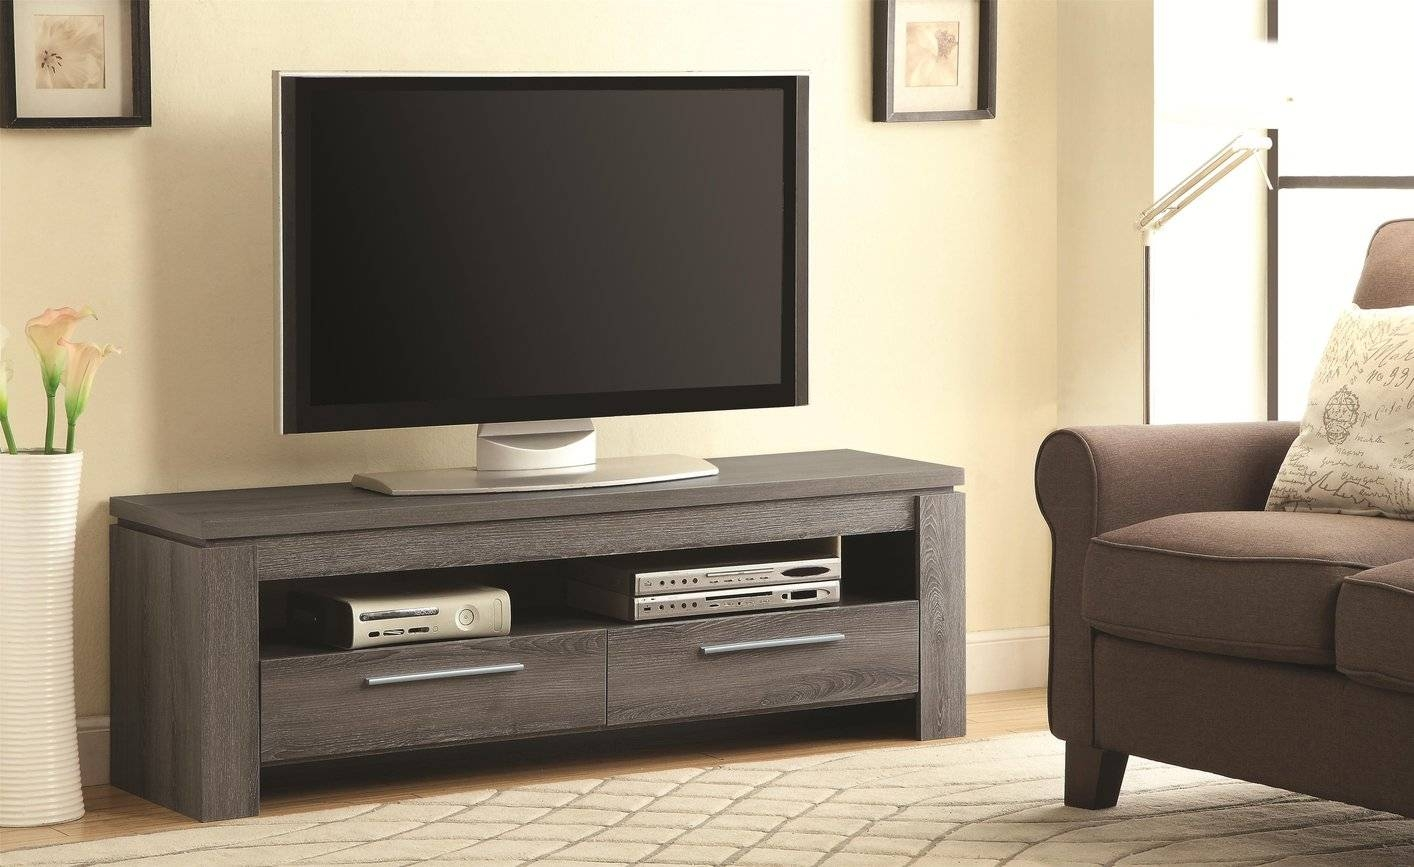 Grey Wood Tv Stand – Steal A Sofa Furniture Outlet Los Angeles Ca Pertaining To Wooden Tv Stands (View 14 of 15)